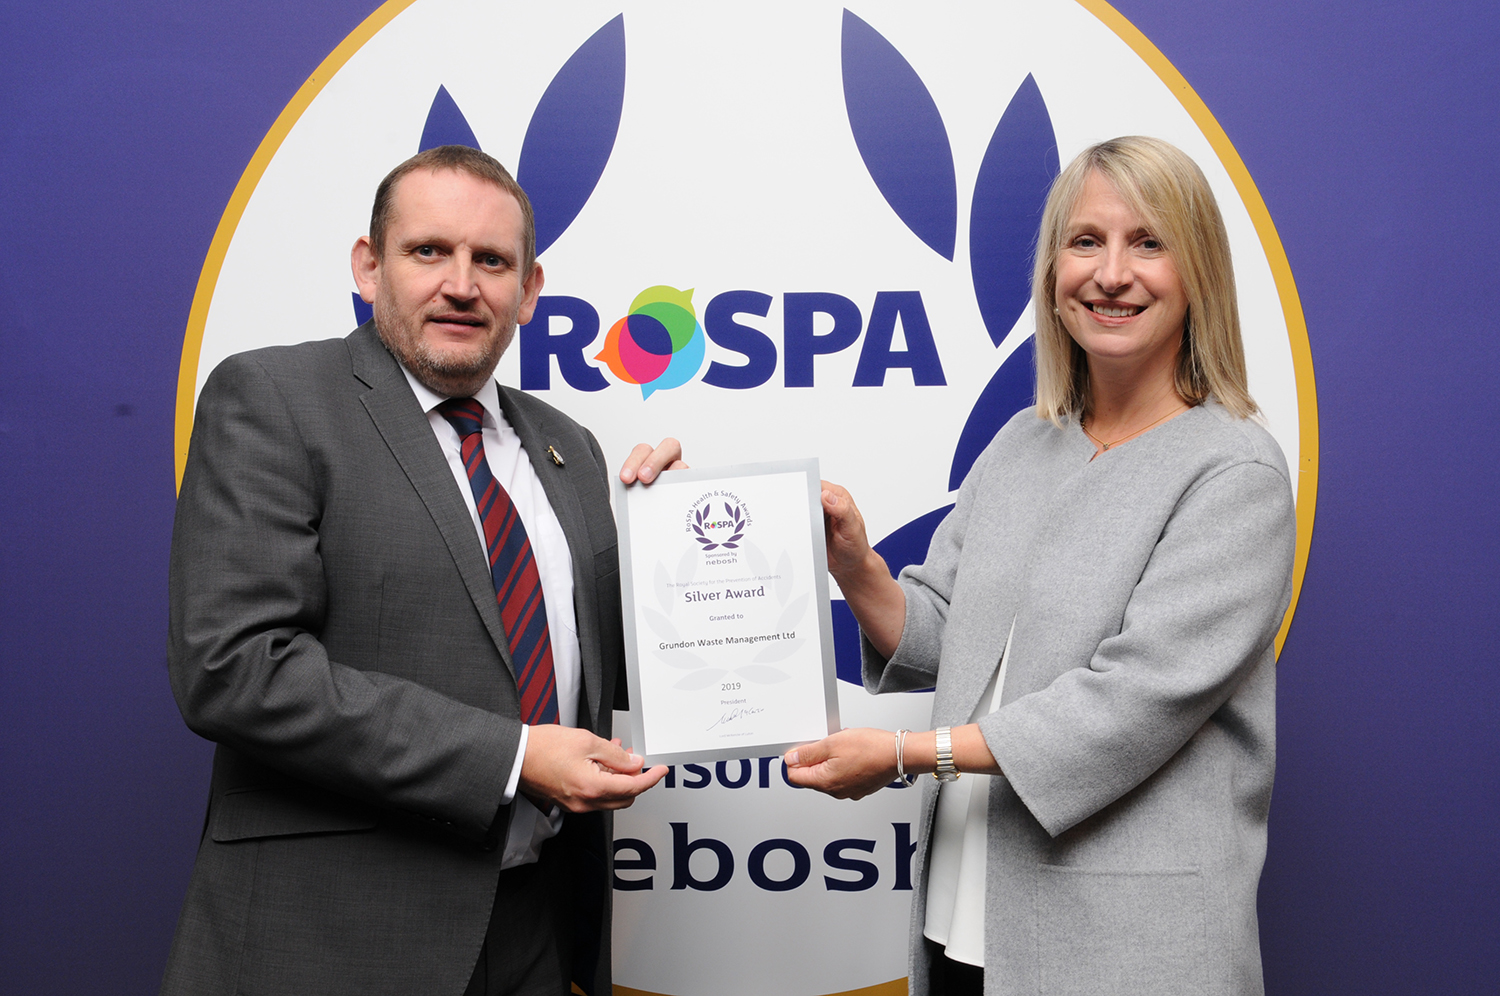 Reg Hodson, SHEQ Manager at Grundon Waste Management, collects the Silver Award from Jocelyn McNulty, RoSPA Trustee, at the RoSPA 2019 Awards